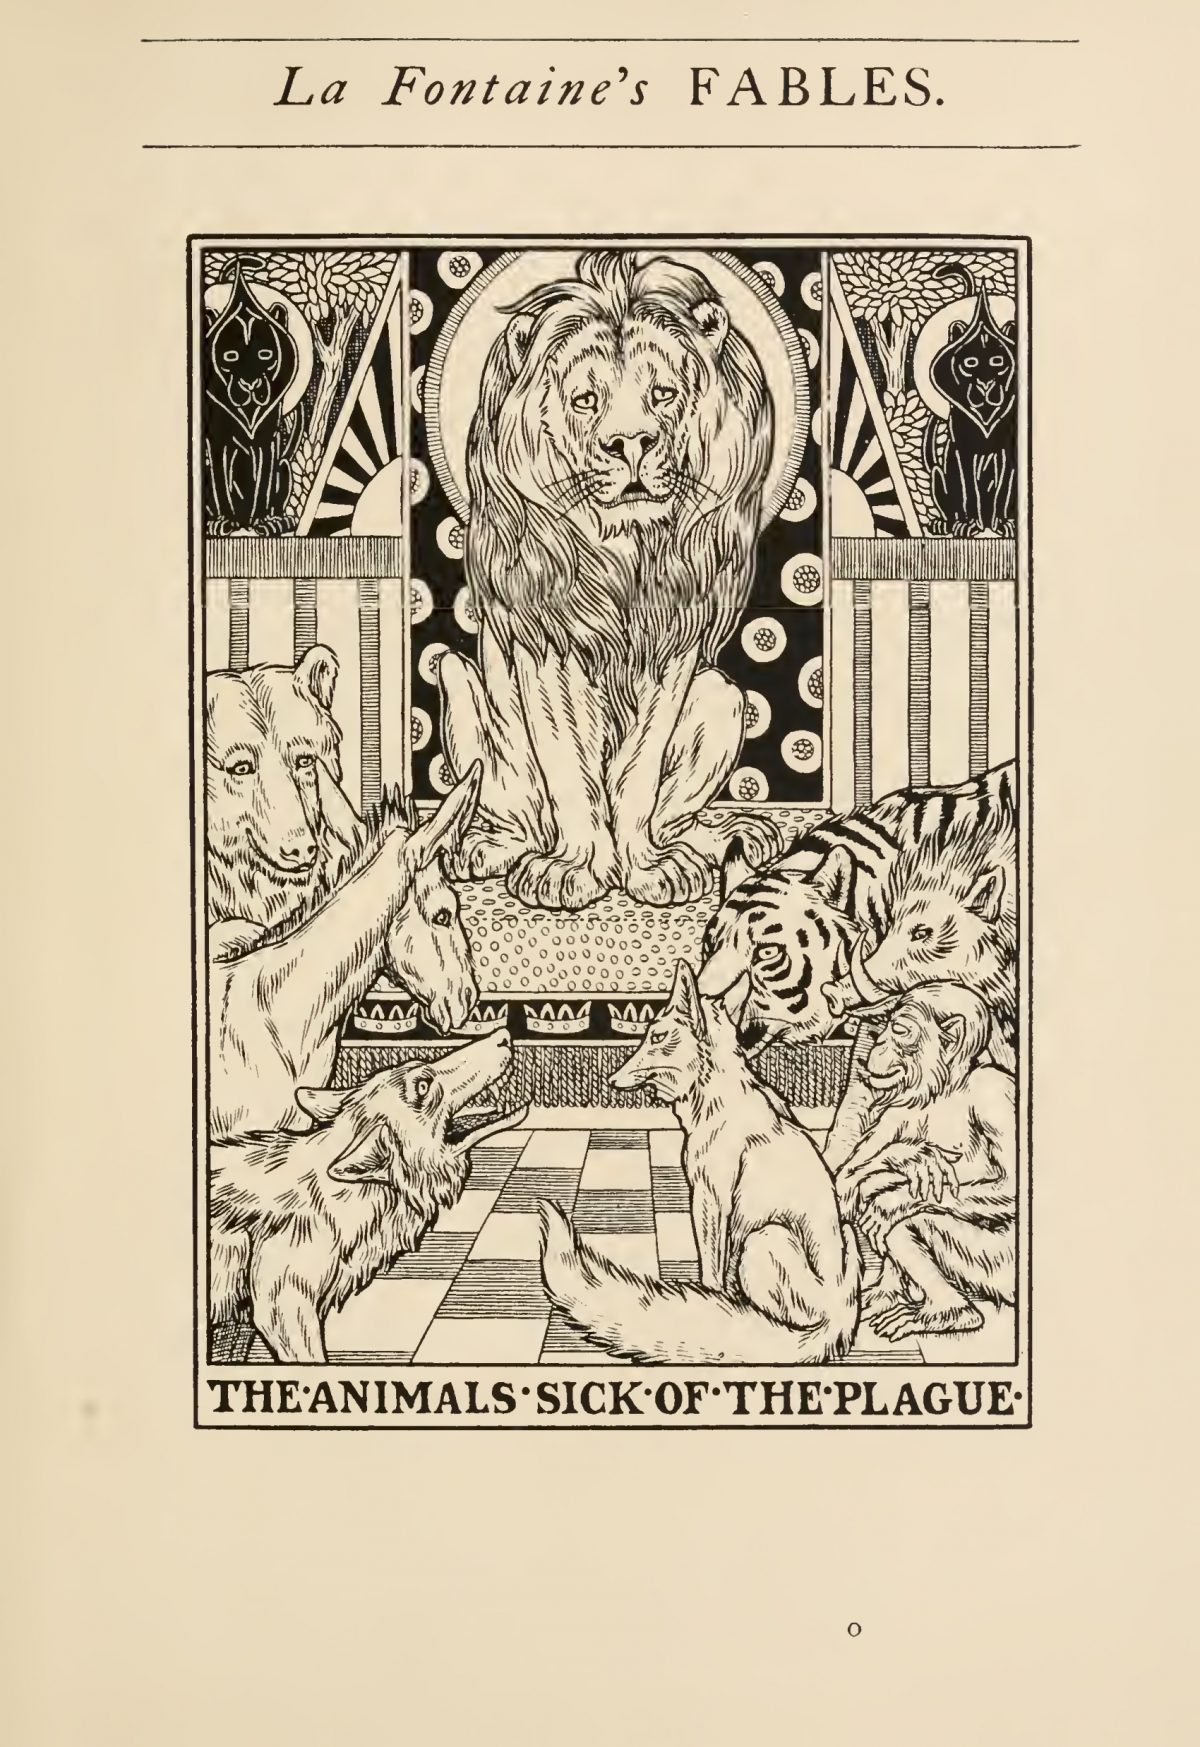 A picture by François Chauveau, illustrator of the original edition of the Fables